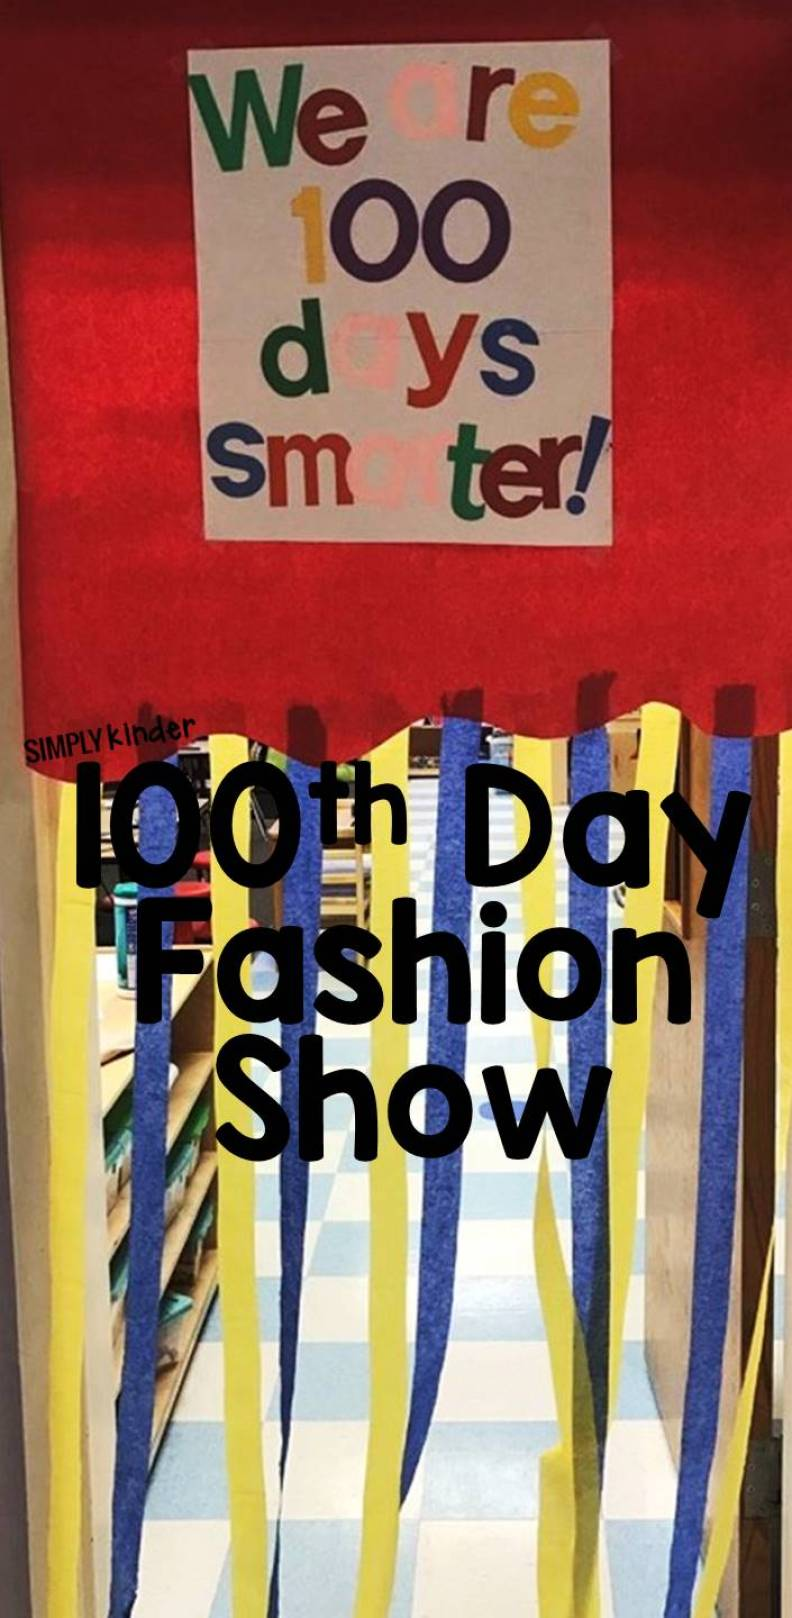 A 100th day fashion show is a great way to celebrate reaching 100 days of school with your kindergarten students.